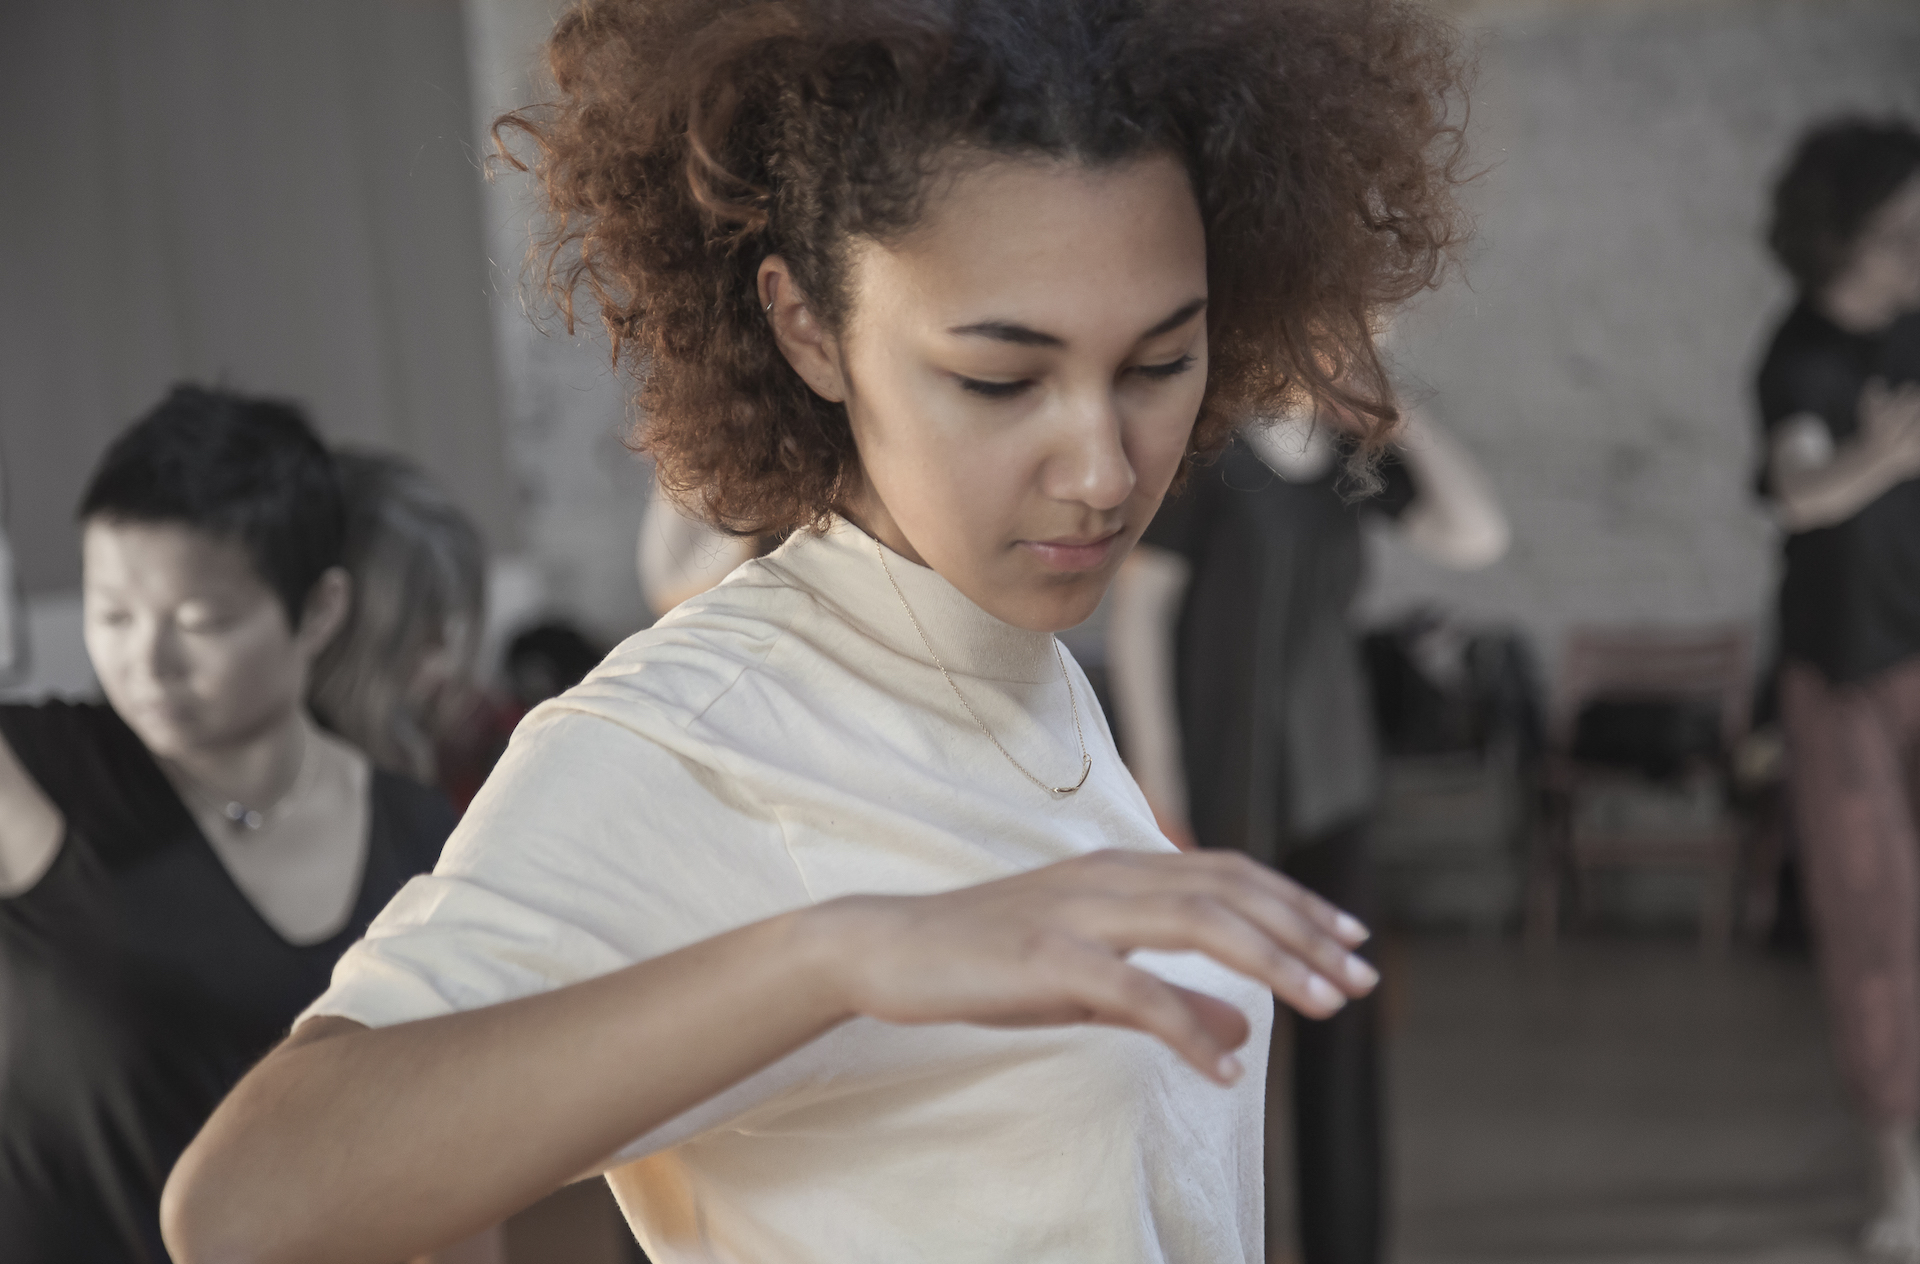 A young woman practices Awareness Through Movement.